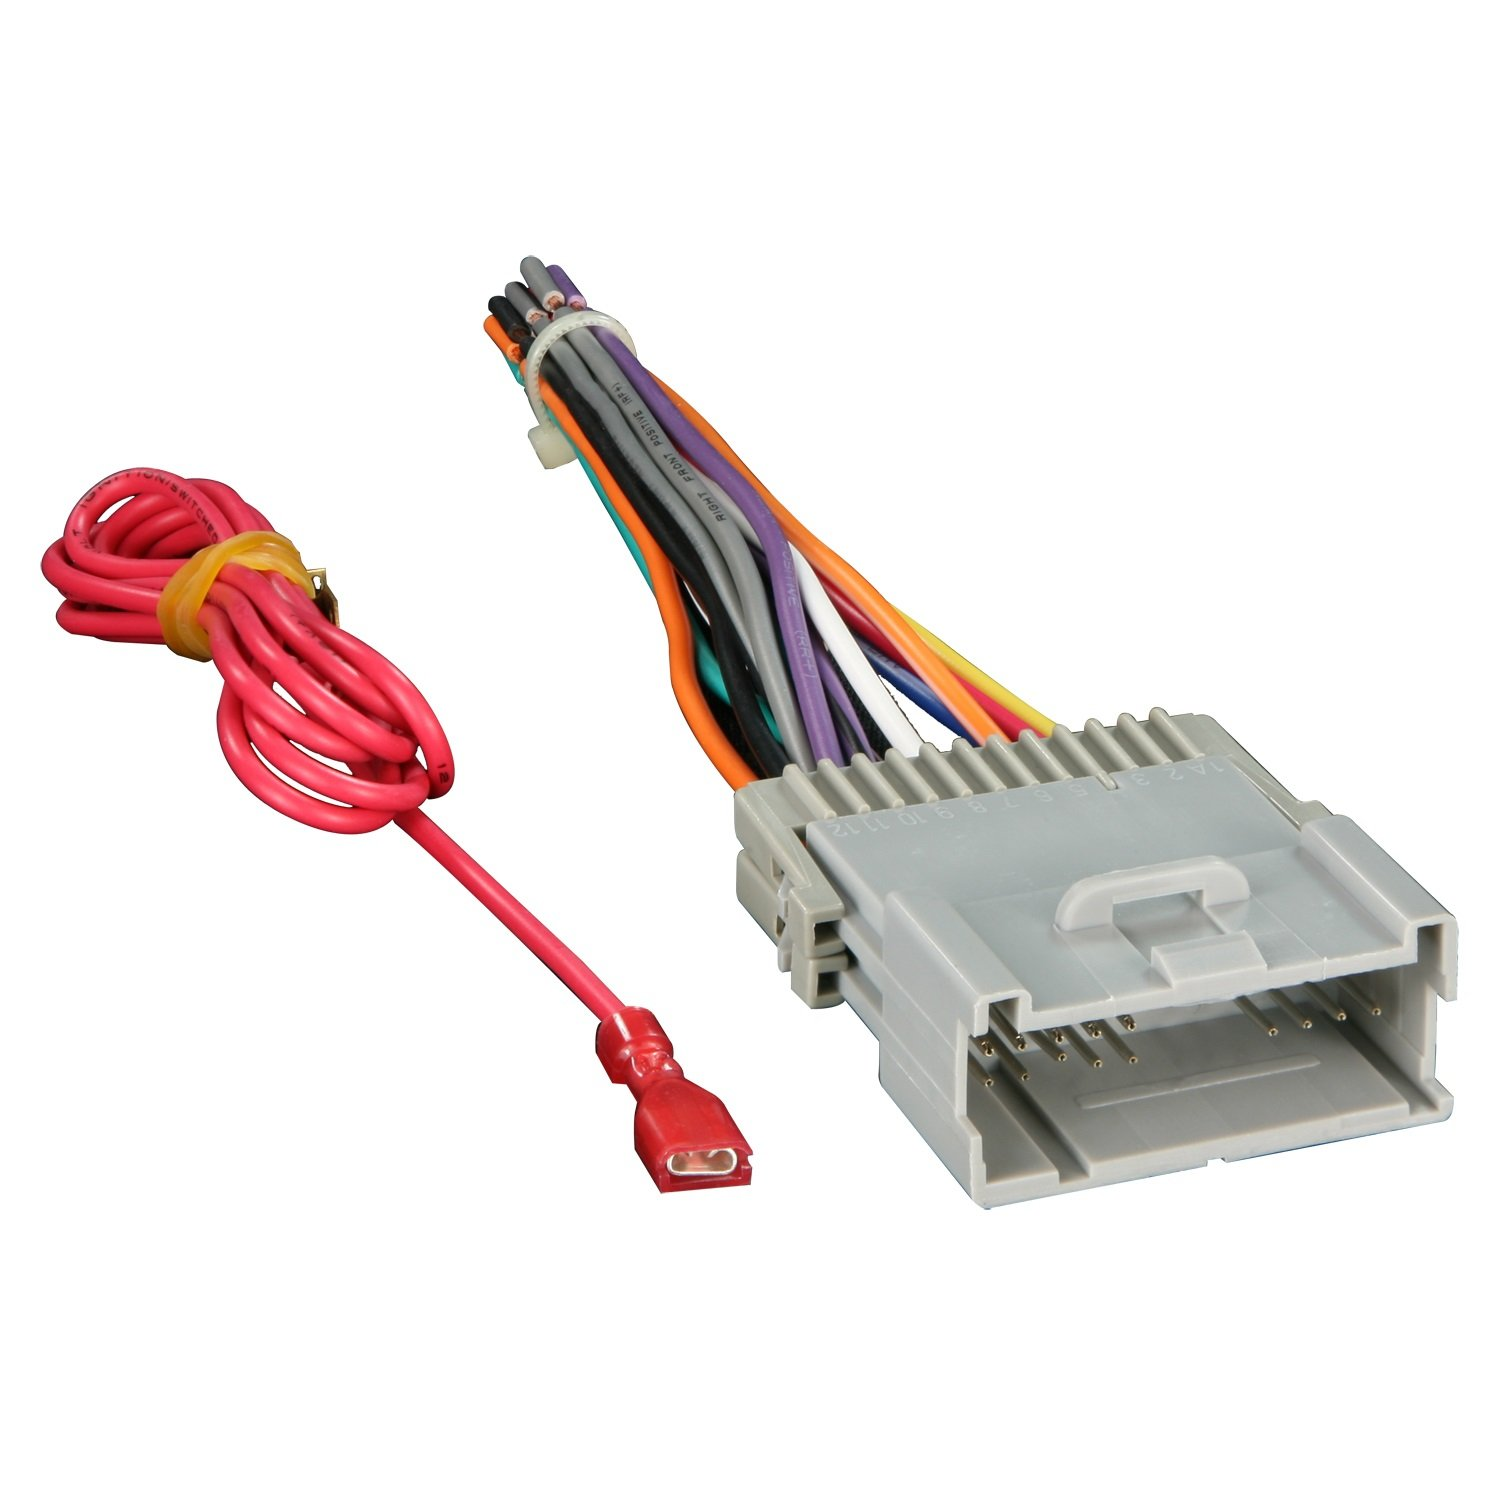 61eewxp9orL._SL1500_ amazon com metra 70 2003 radio wiring harness for gm 98 08  at highcare.asia